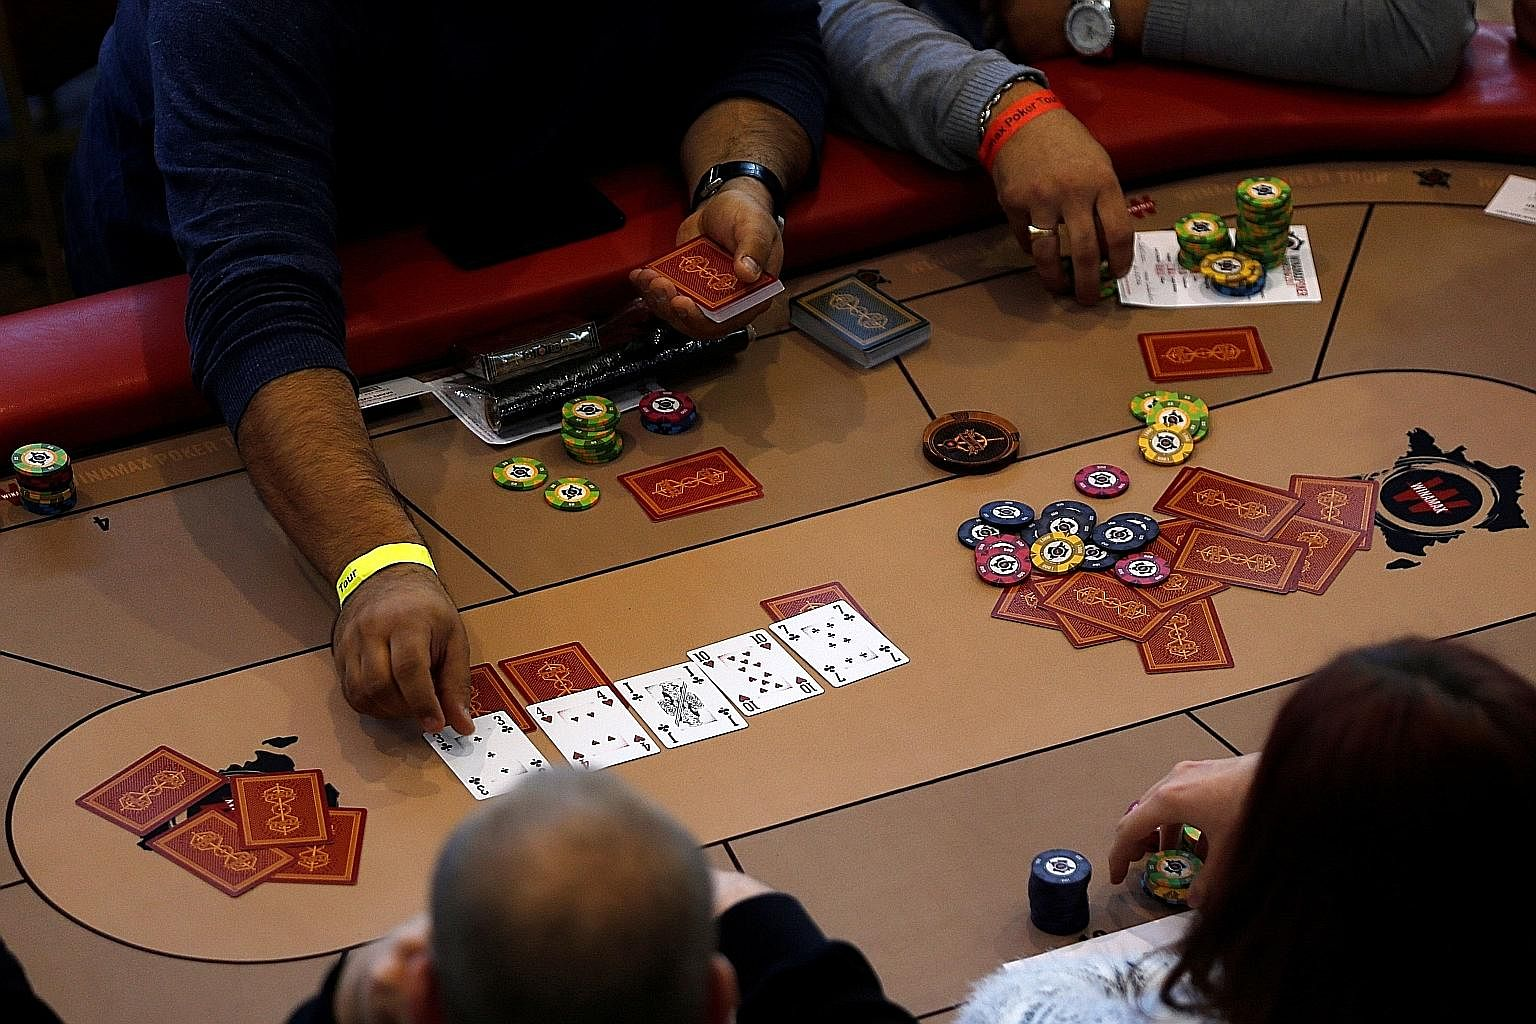 Compared with other games, poker is a big challenge for AI. It is a game of uncertainty as players don't know other players' cards. It also requires an understanding of the psychology of other players.